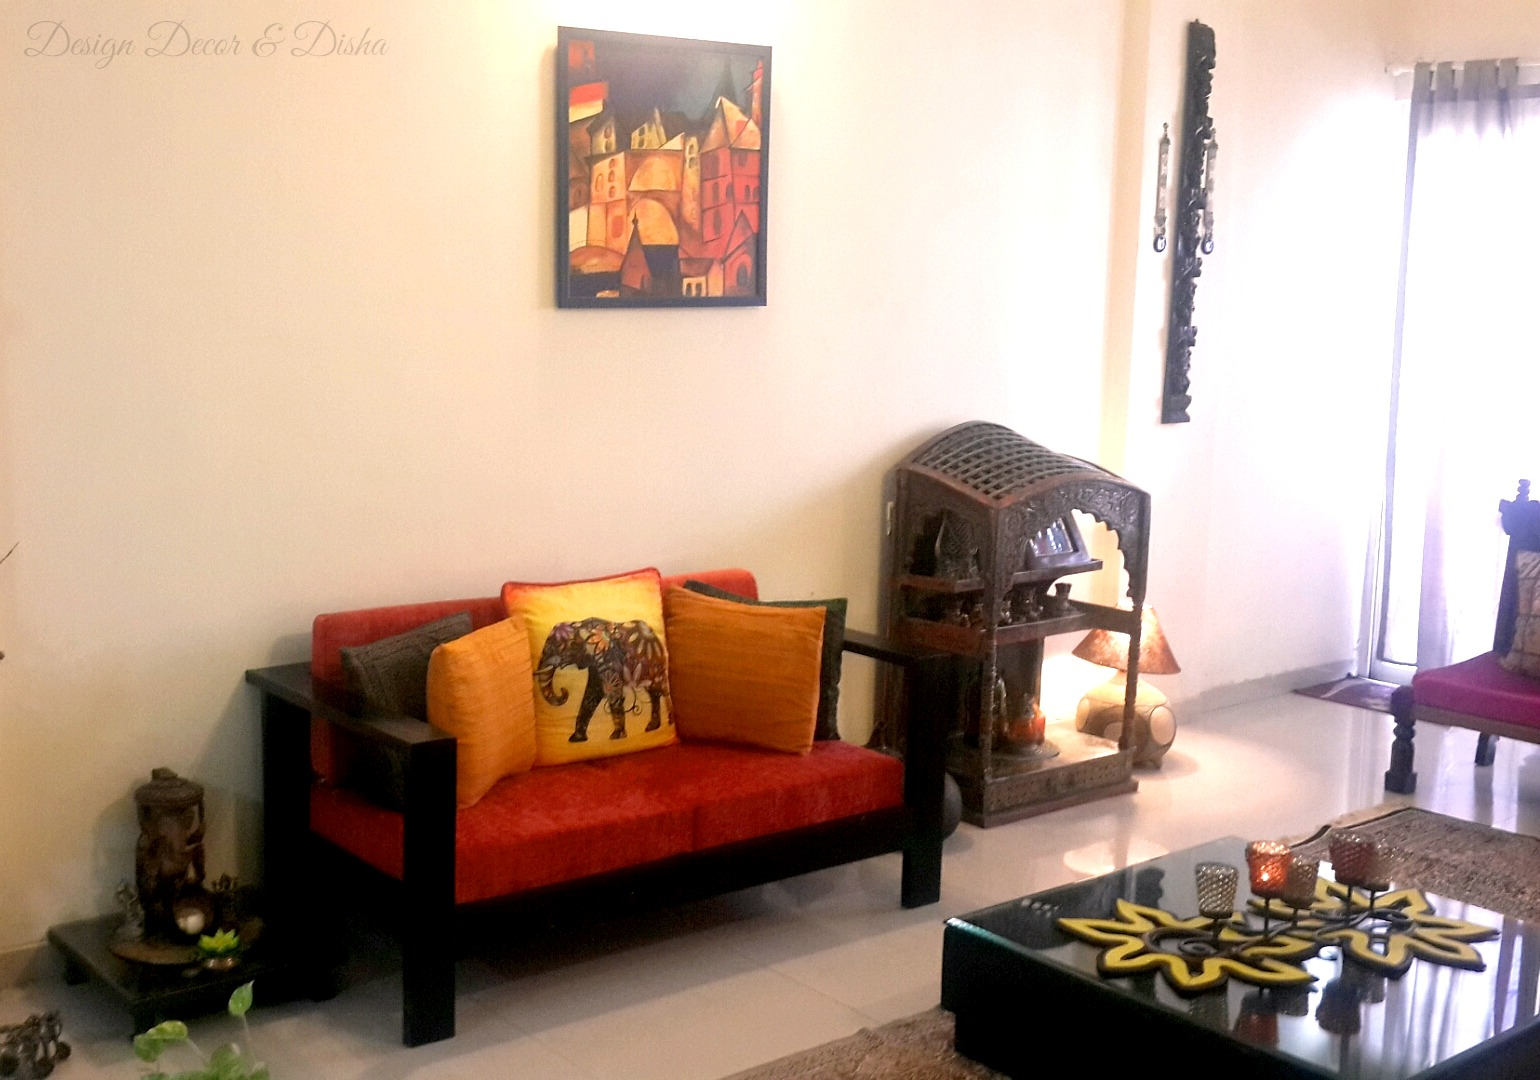 Indian Home Decorating Ideas Part - 24: Indian Home Tour